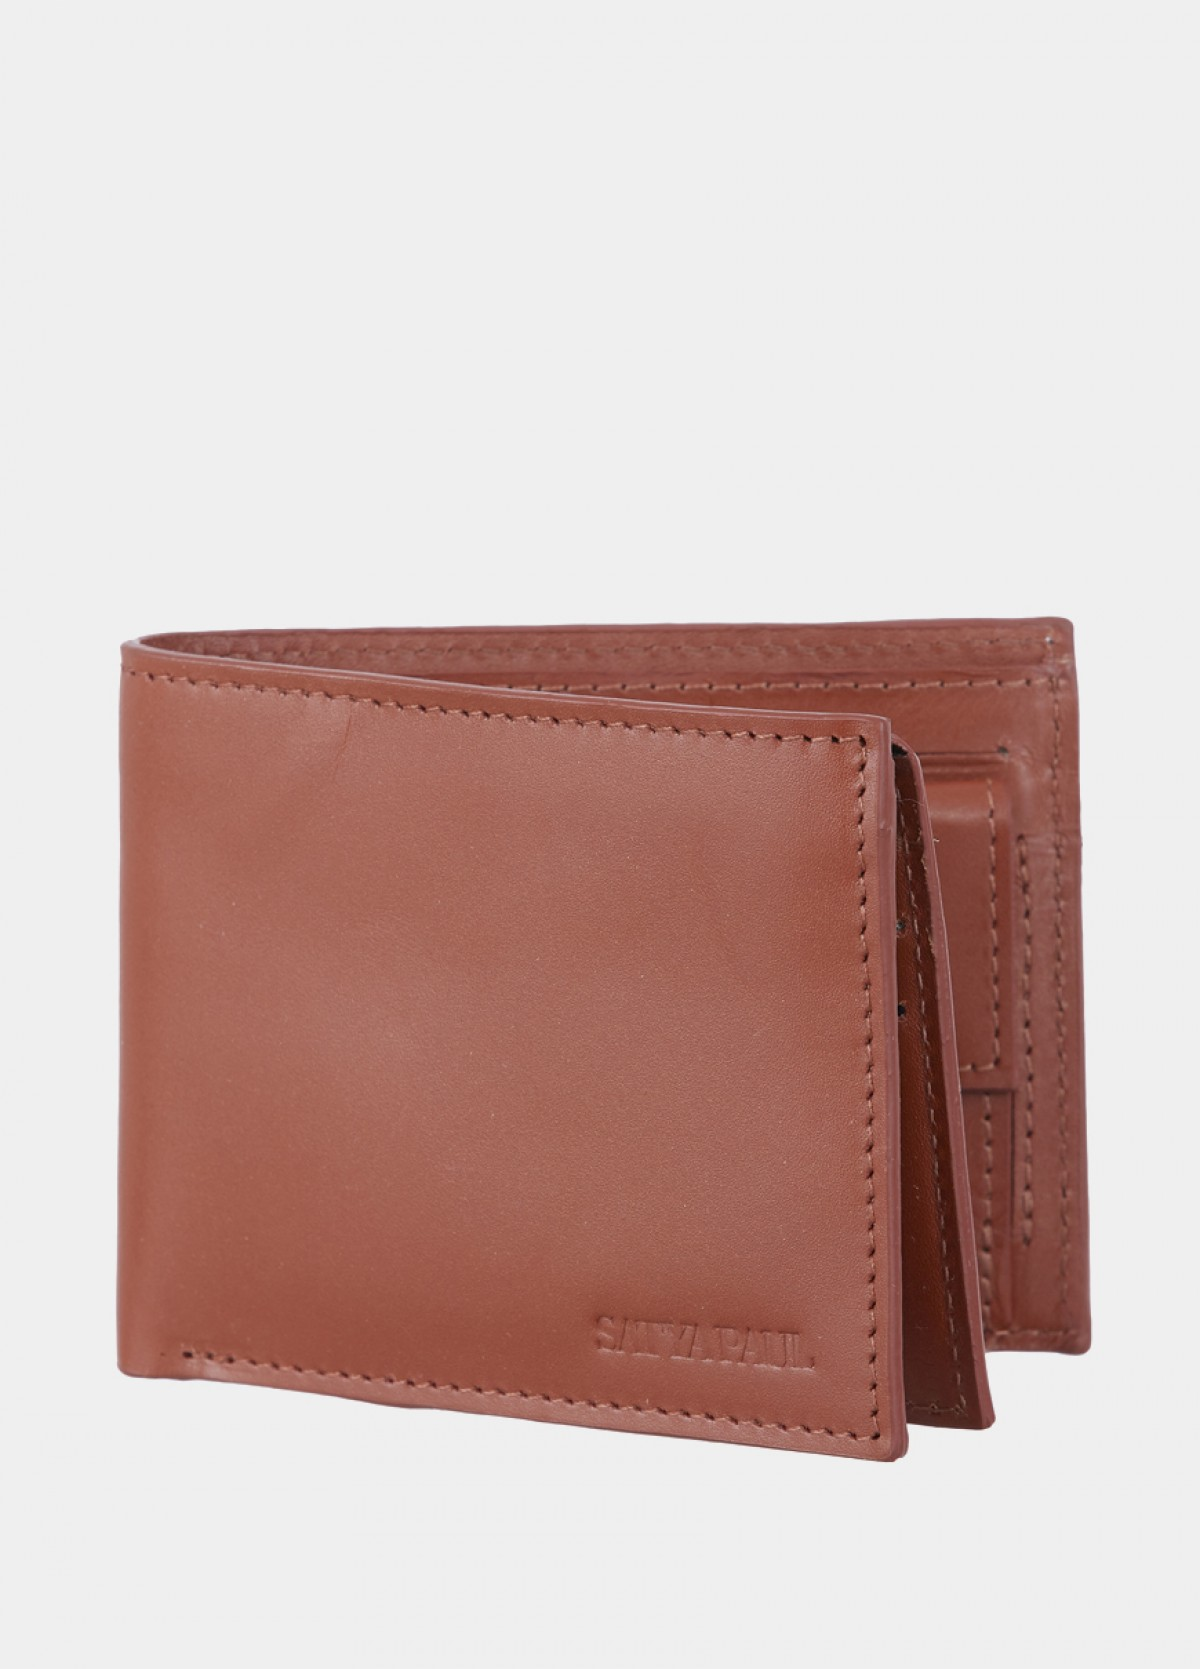 The Tan Leather Men Wallet